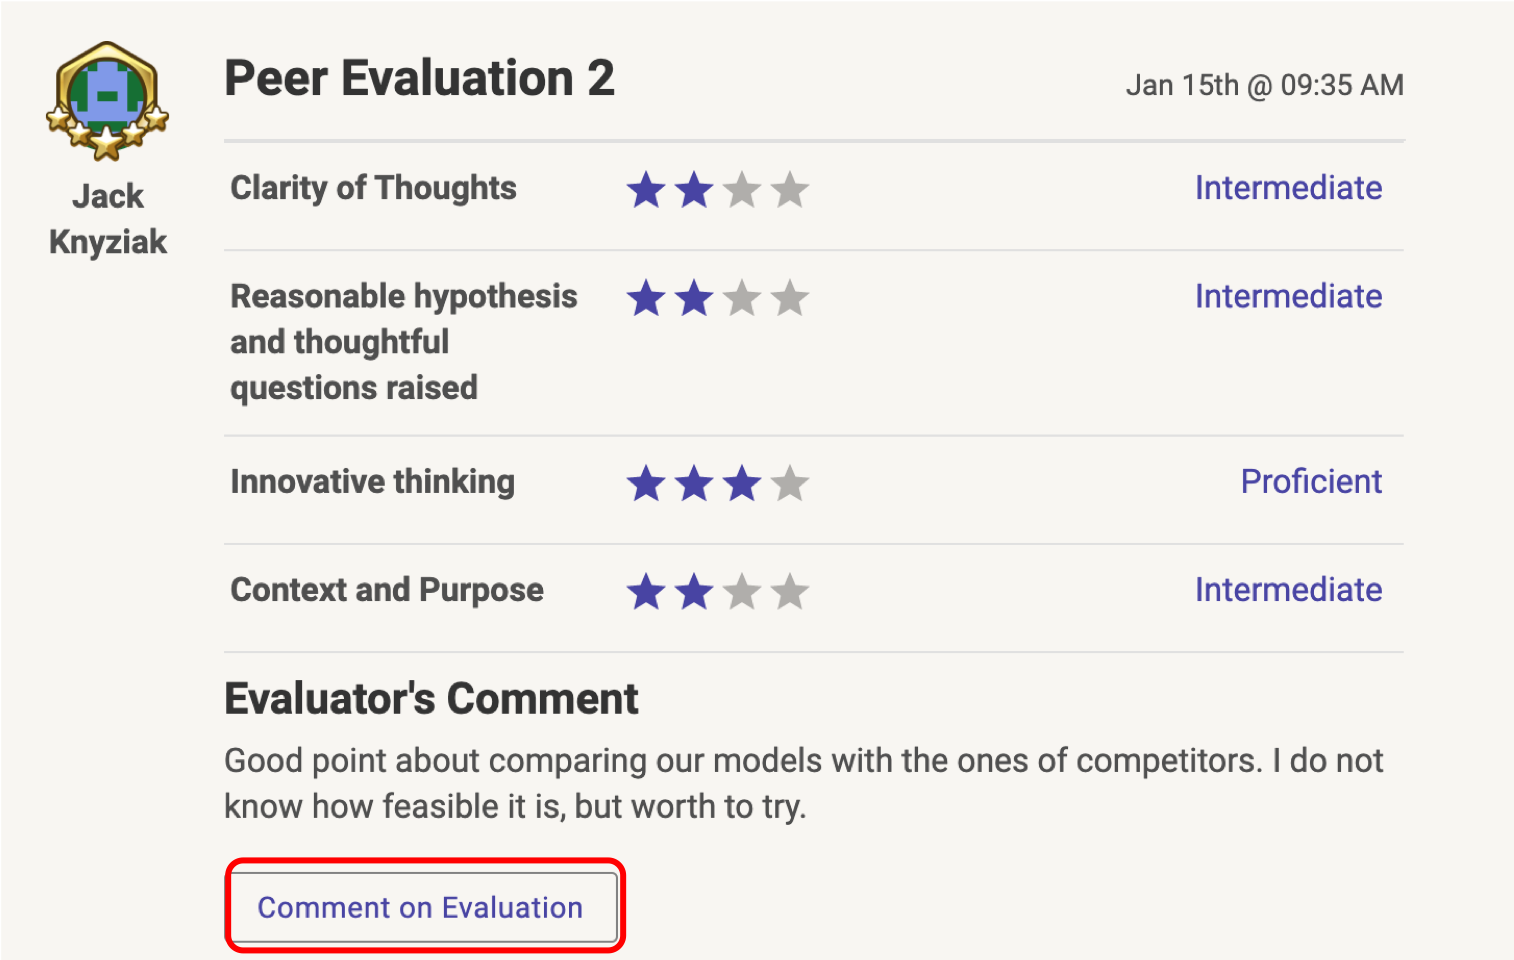 Red outlined Comment on Evaluation button